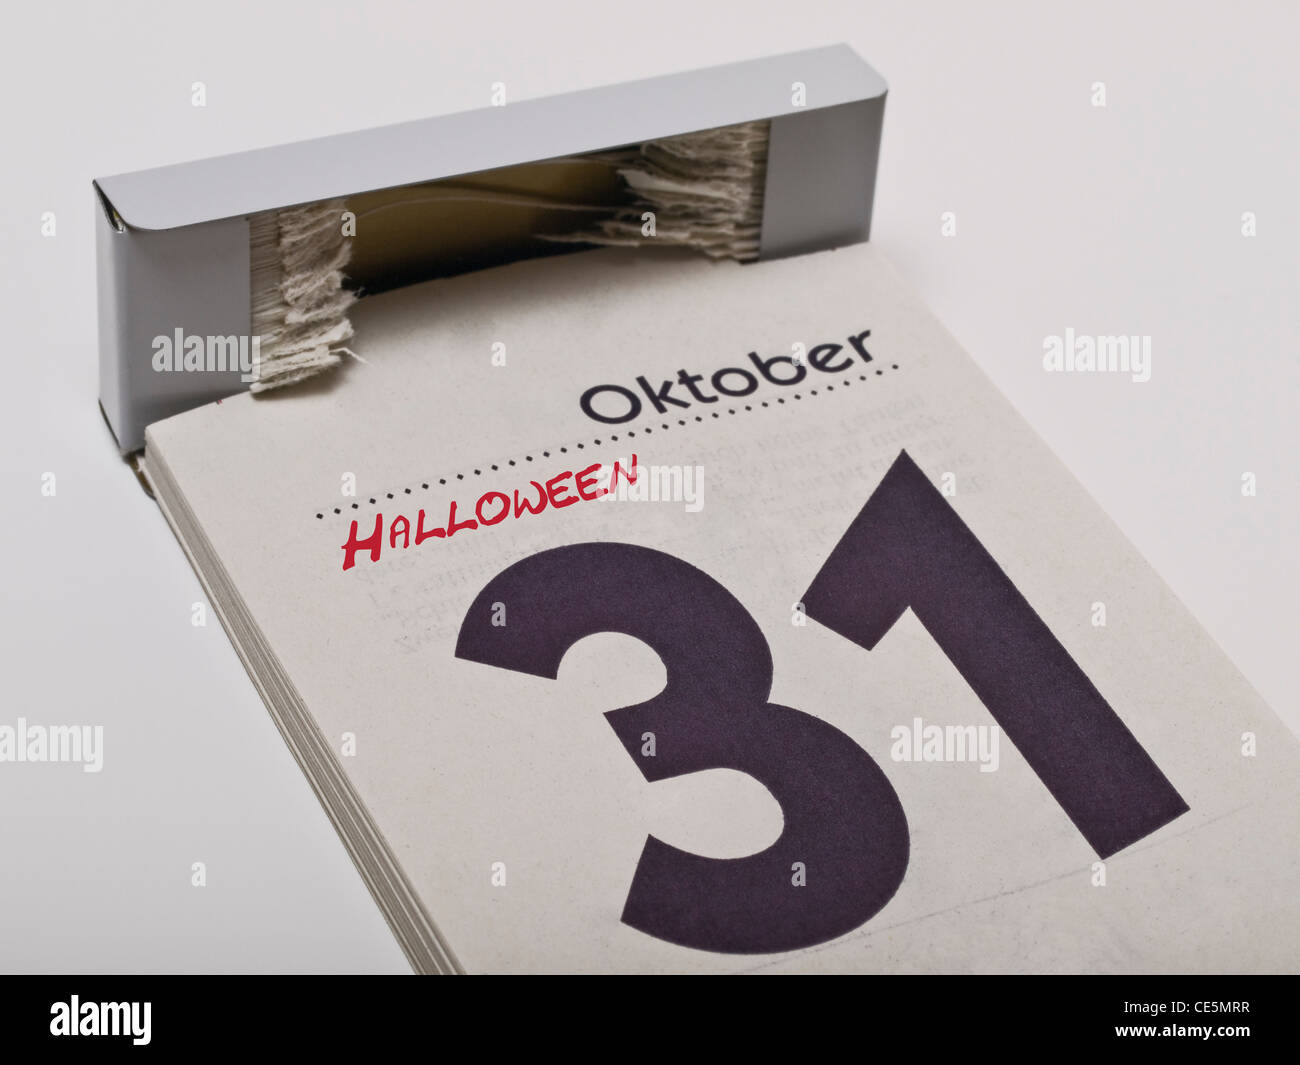 Ein Kalender zeigt den 31. Oktober, Halloween, an | A calendar shows October 31st, Halloween - Stock Image